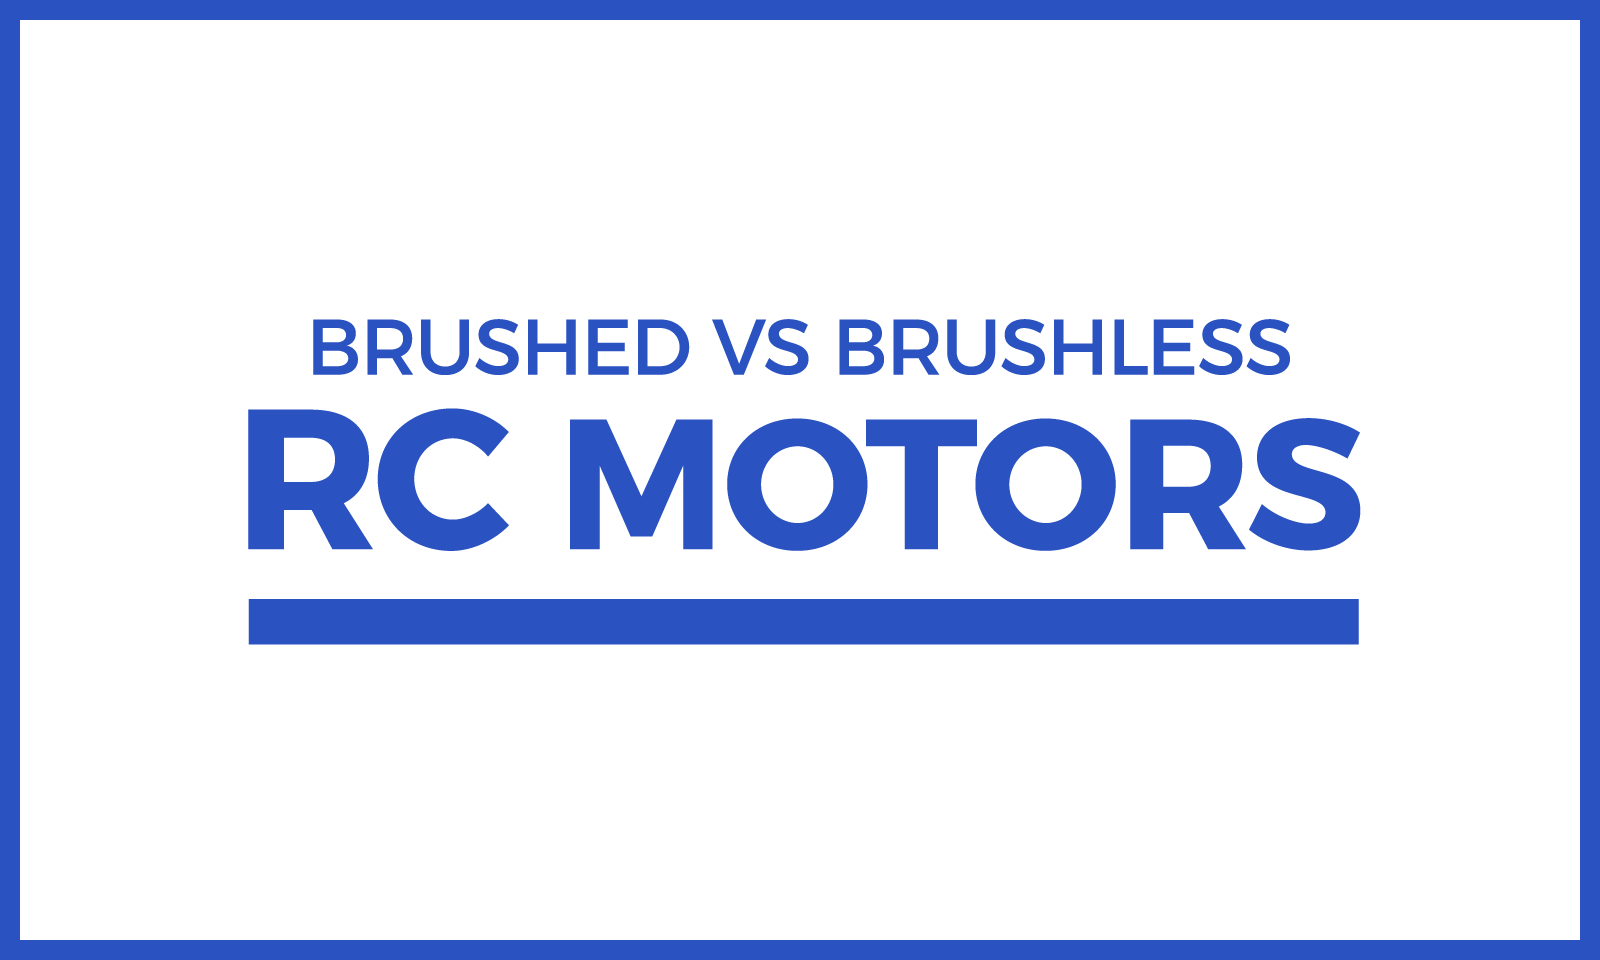 Brushed vs Brushless RC Motors Header